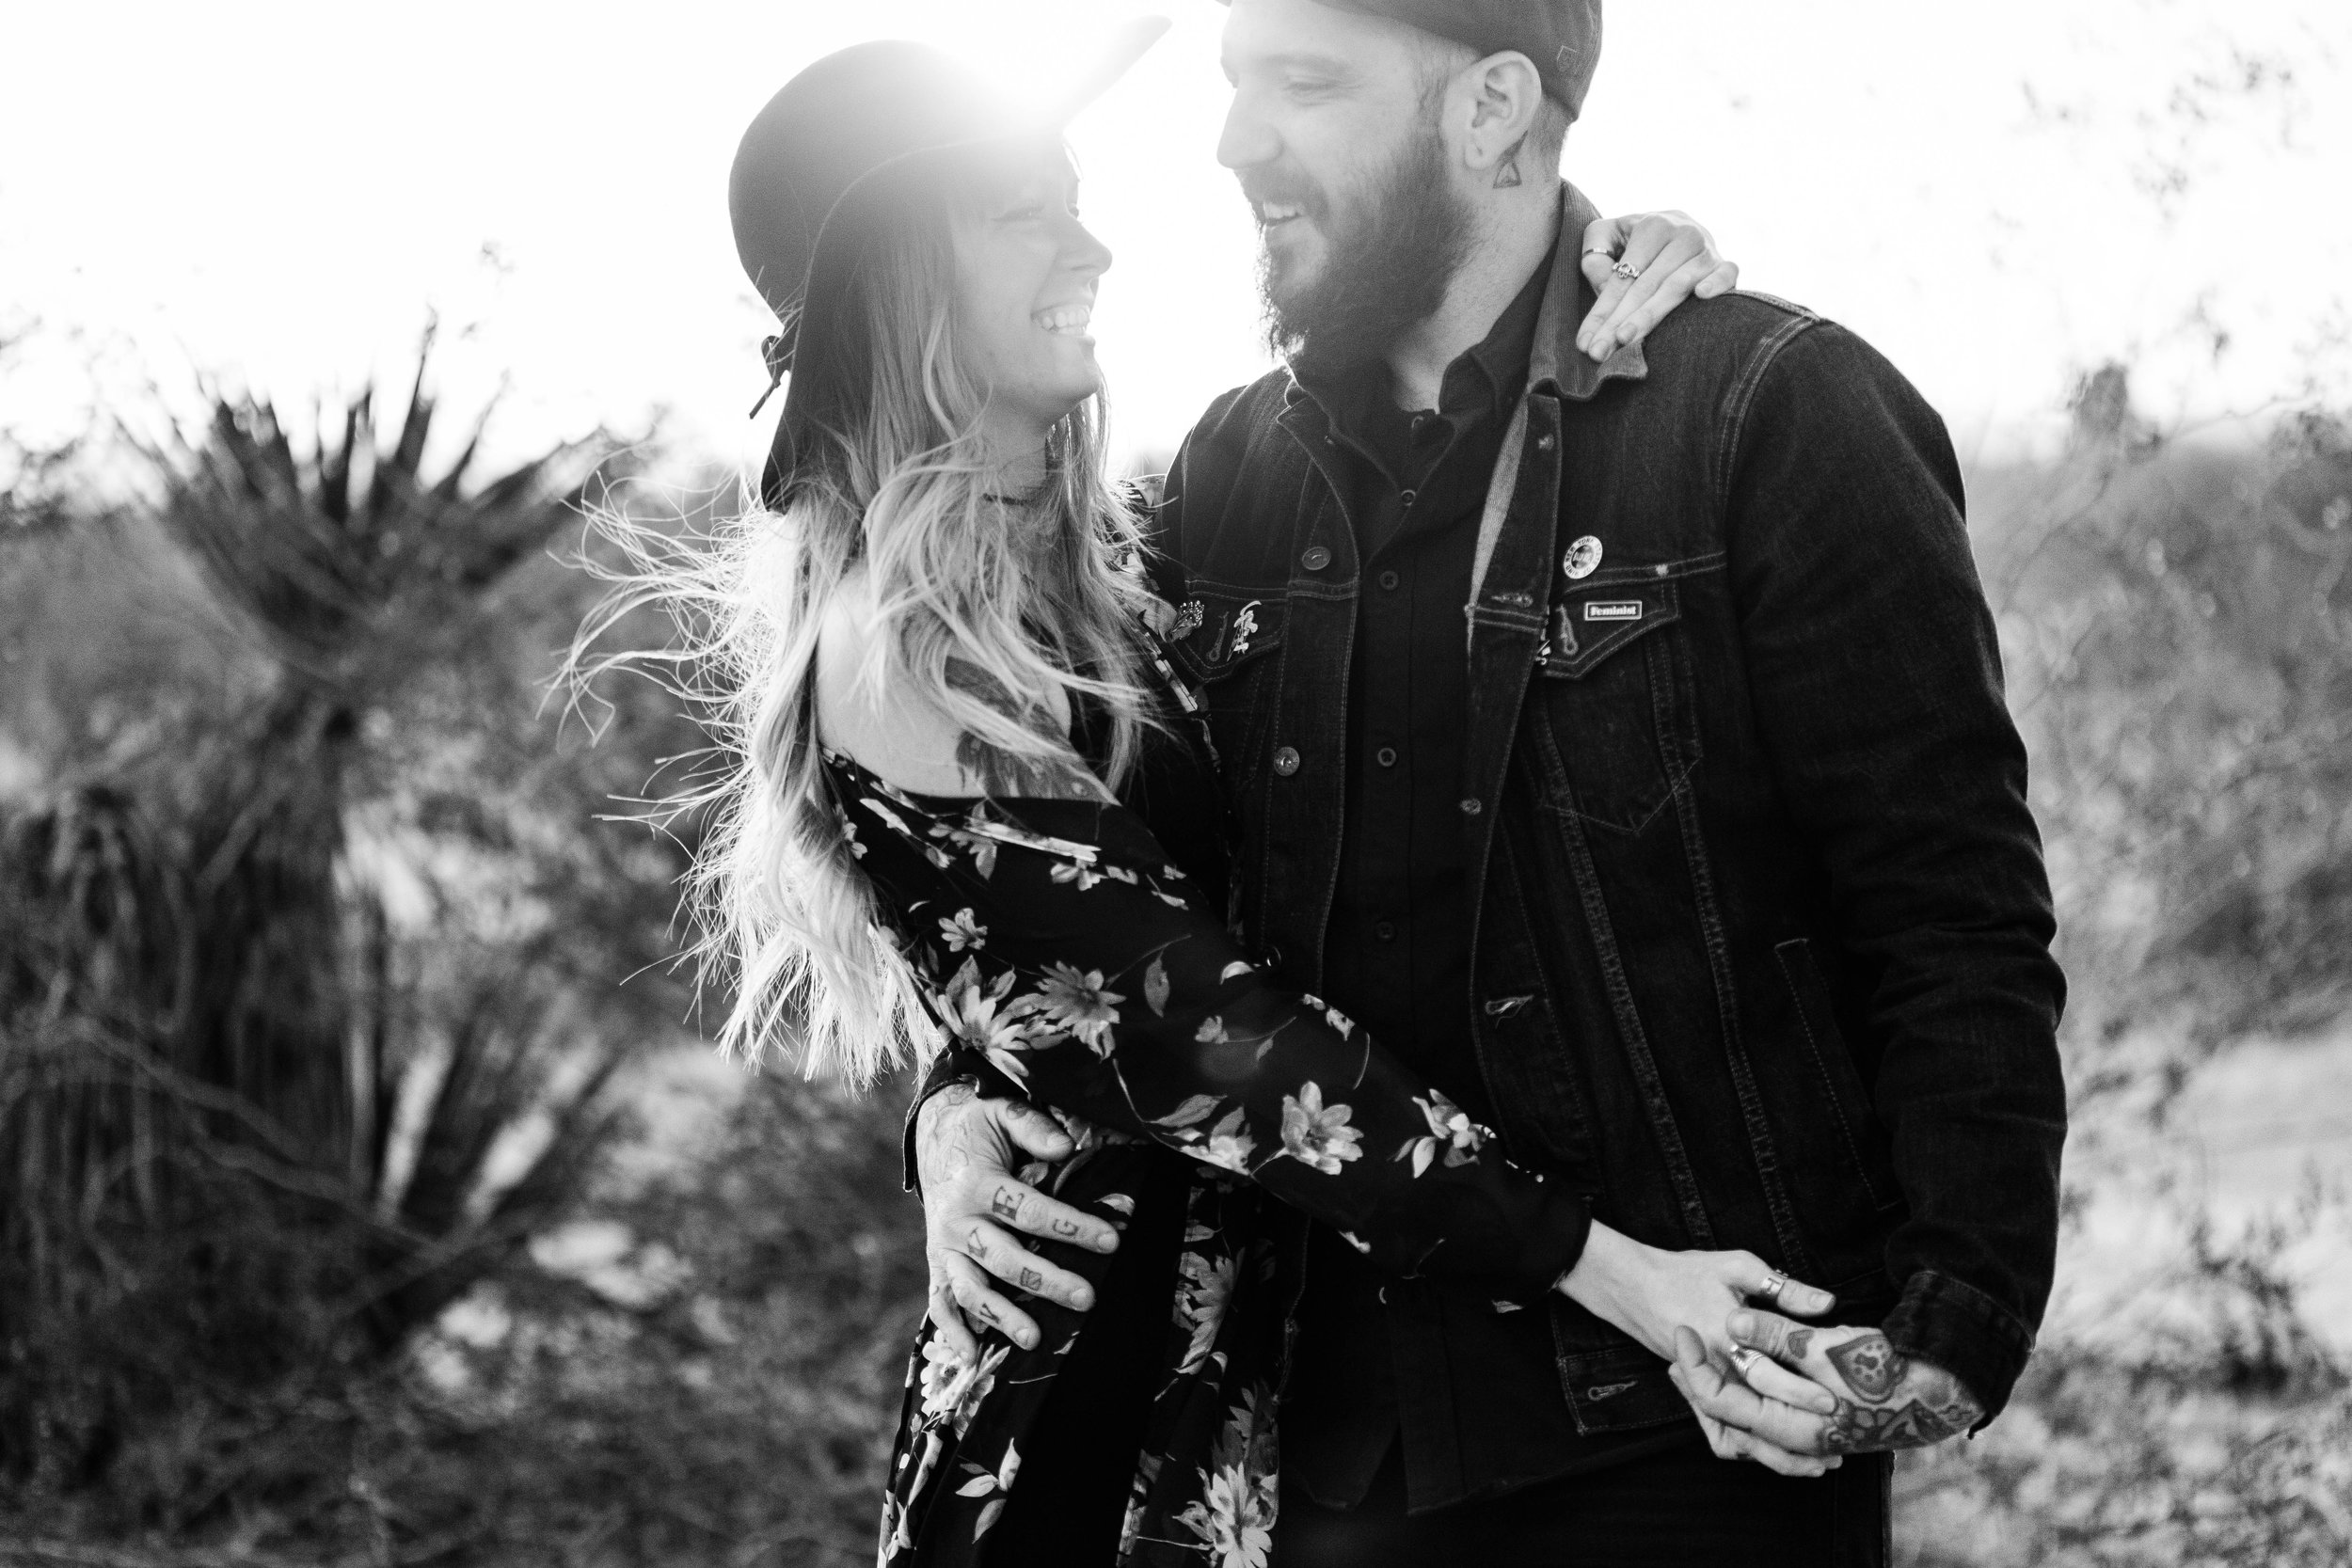 Nicole-Daacke-Photography-Adventure-Engagement-couples-Session-joshua-tree-Golden-desert-love-california-photographer-19.jpg